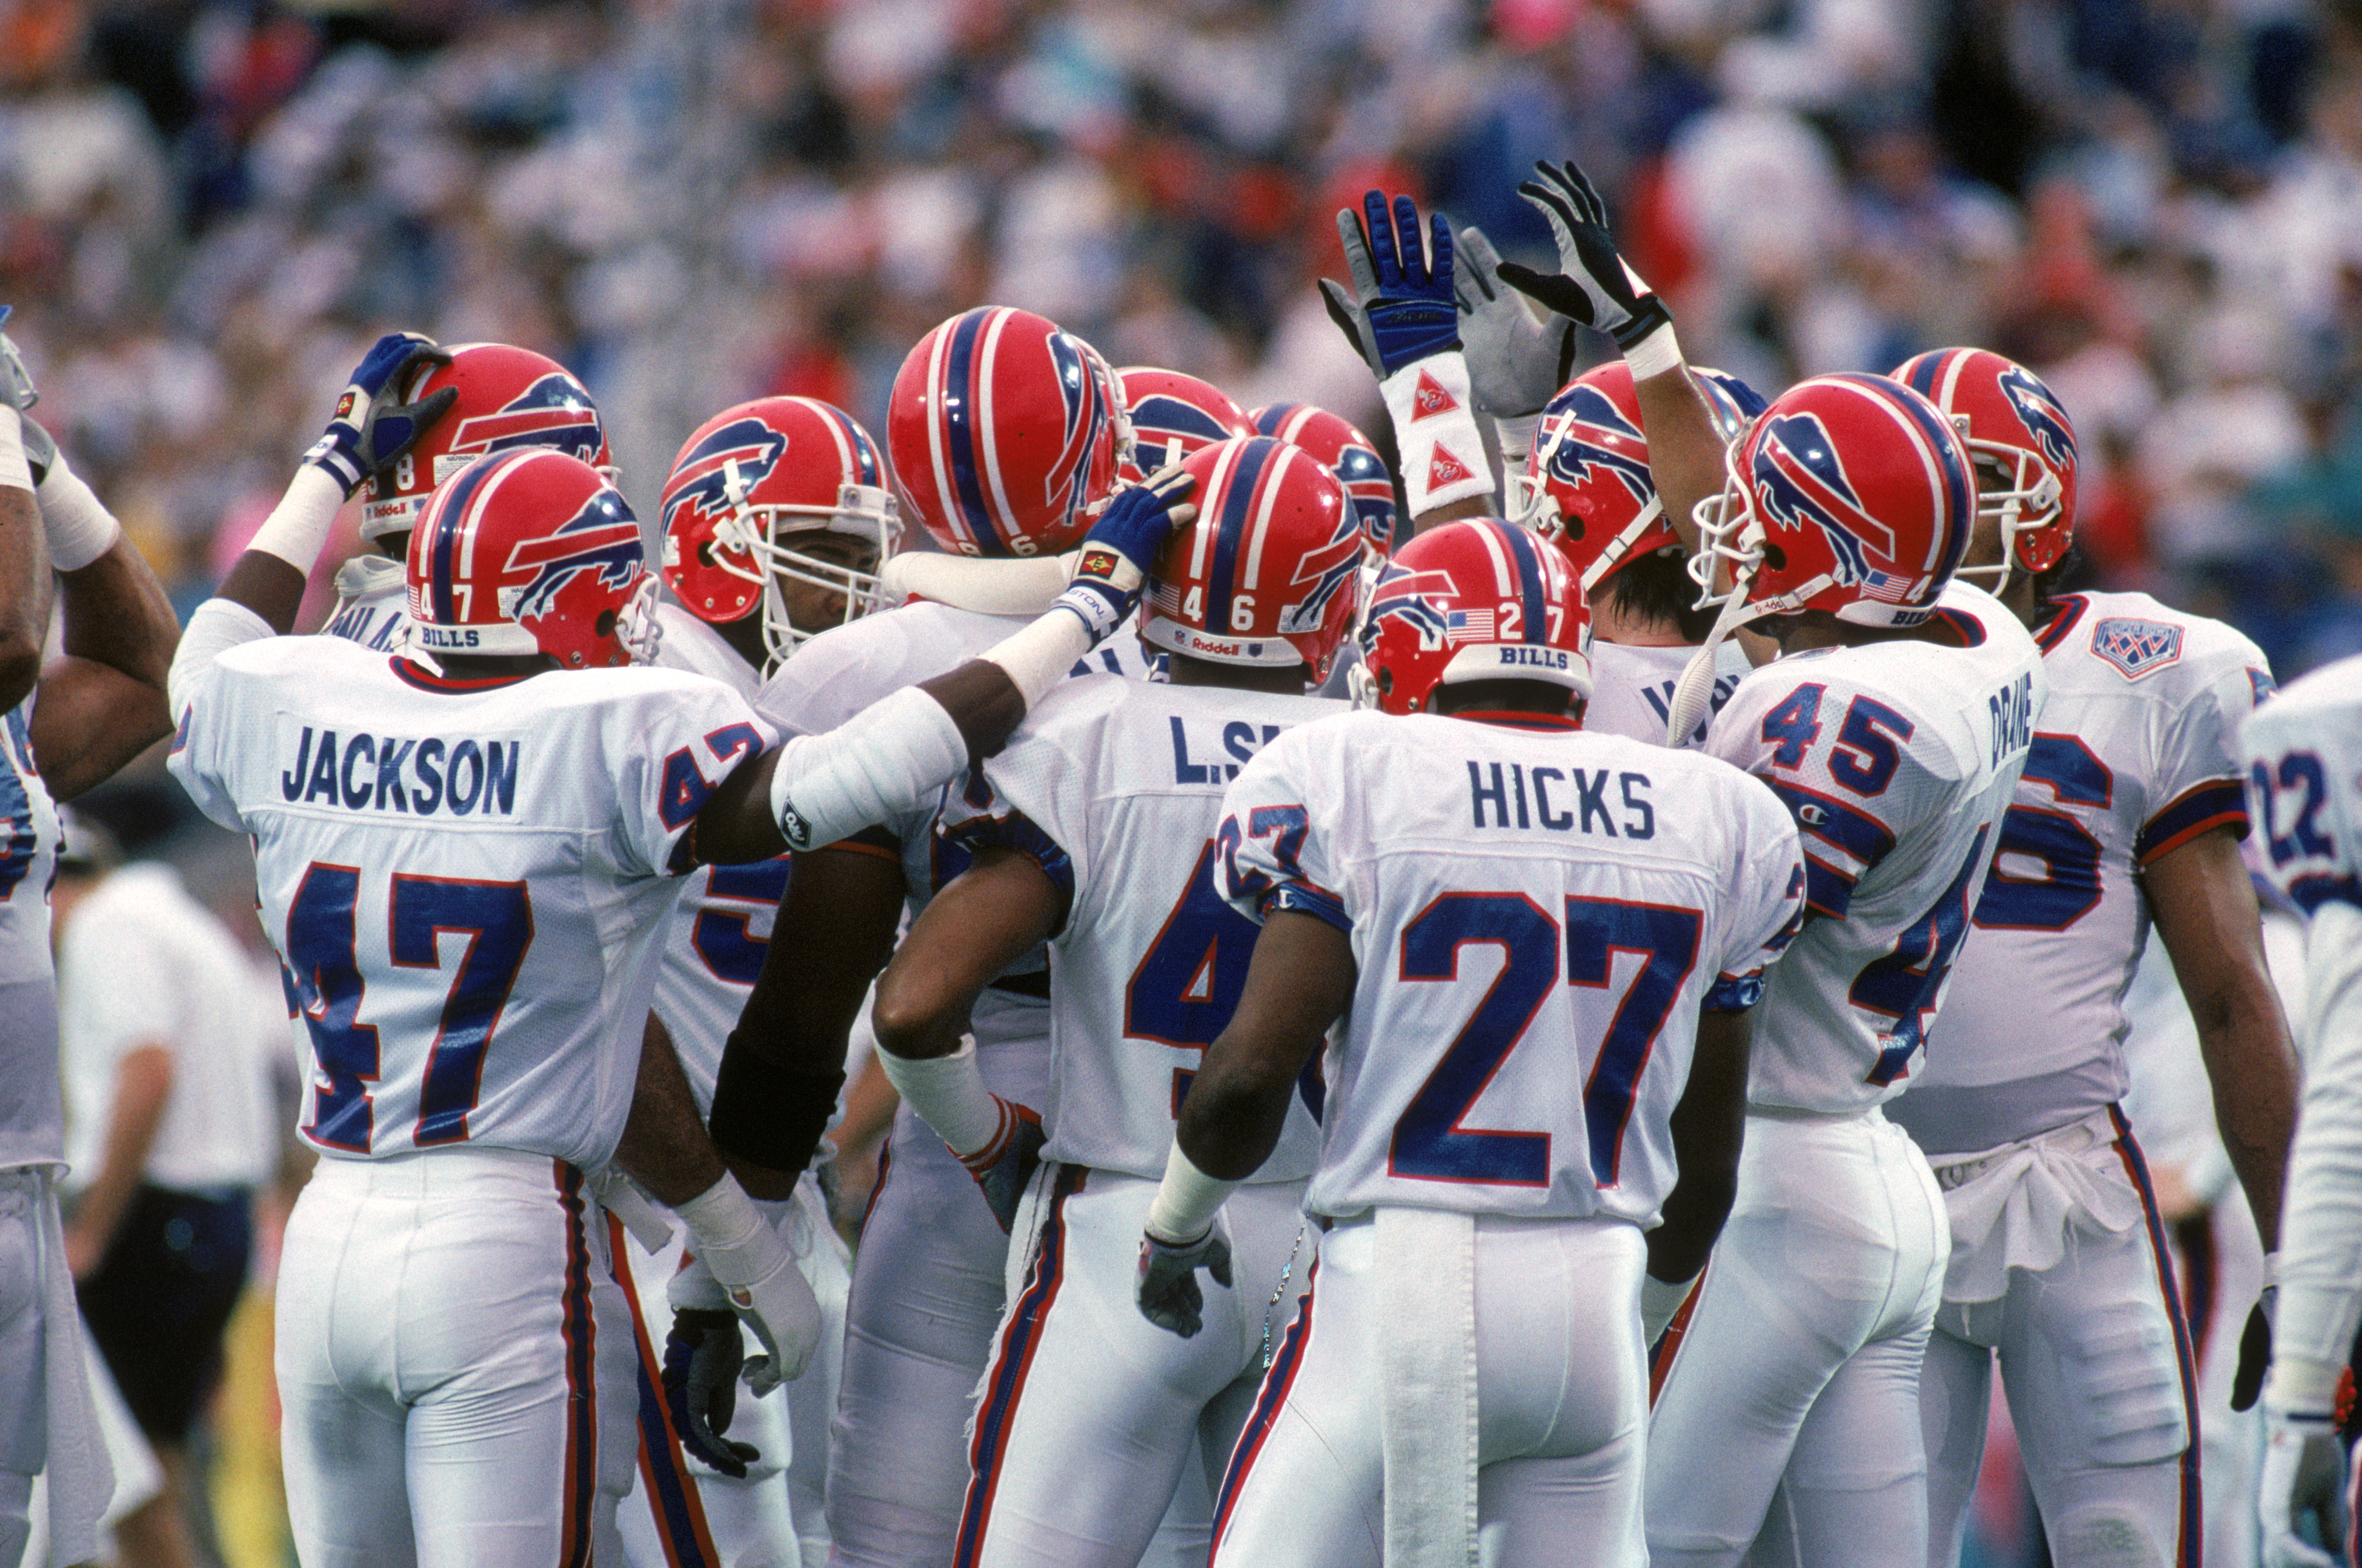 TAMPA, FL - JANUARY 27:  The Buffalo Bills defense gather as they prepares to take on the New York Giants in Super Bowl XXV at Tampa Stadium on January 27, 1991 in Tampa, Florida.  The Giants won 20-19.  (Photo by George Rose/Getty Images)